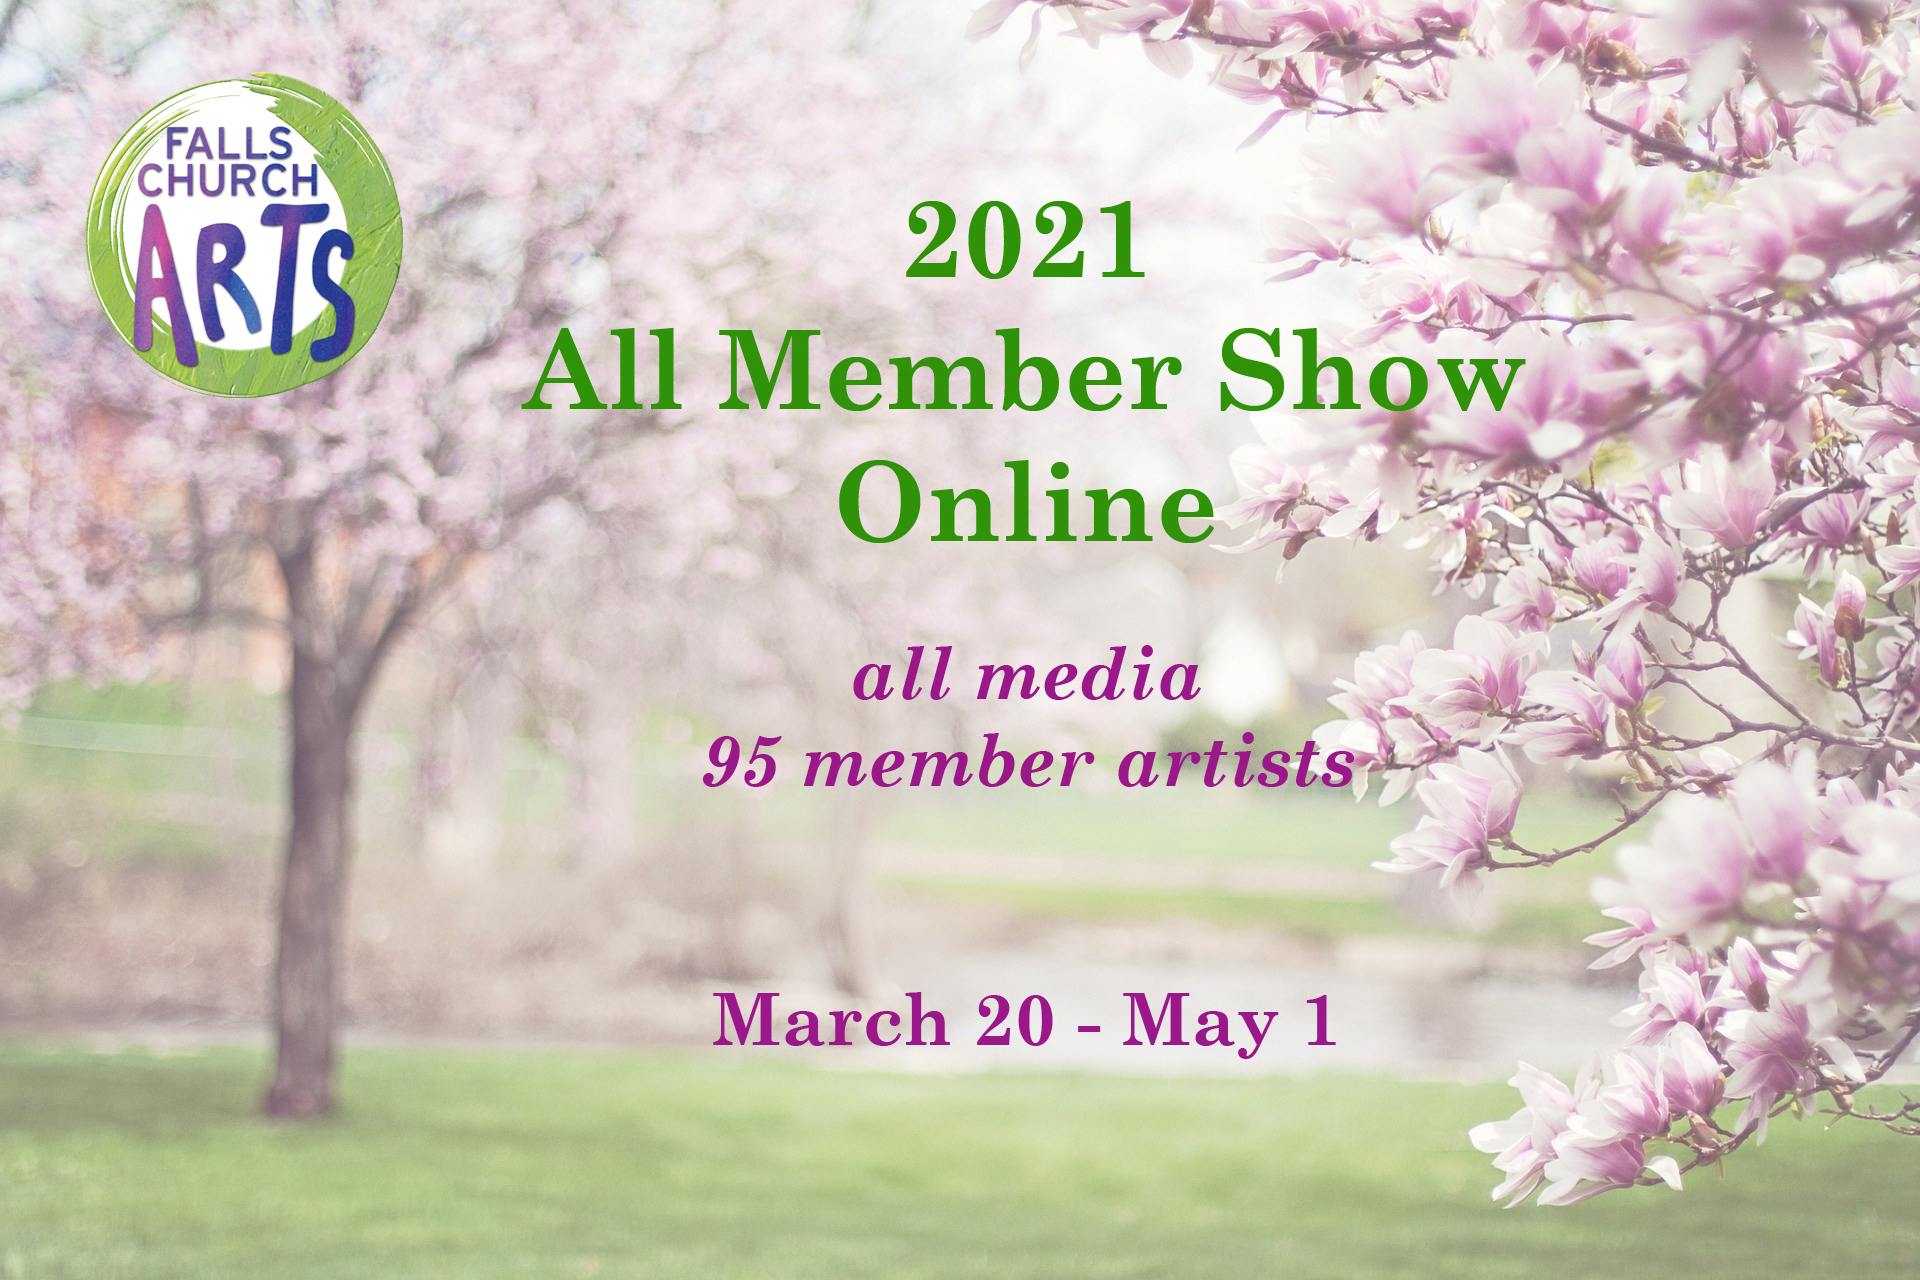 2021 All Member Show Online